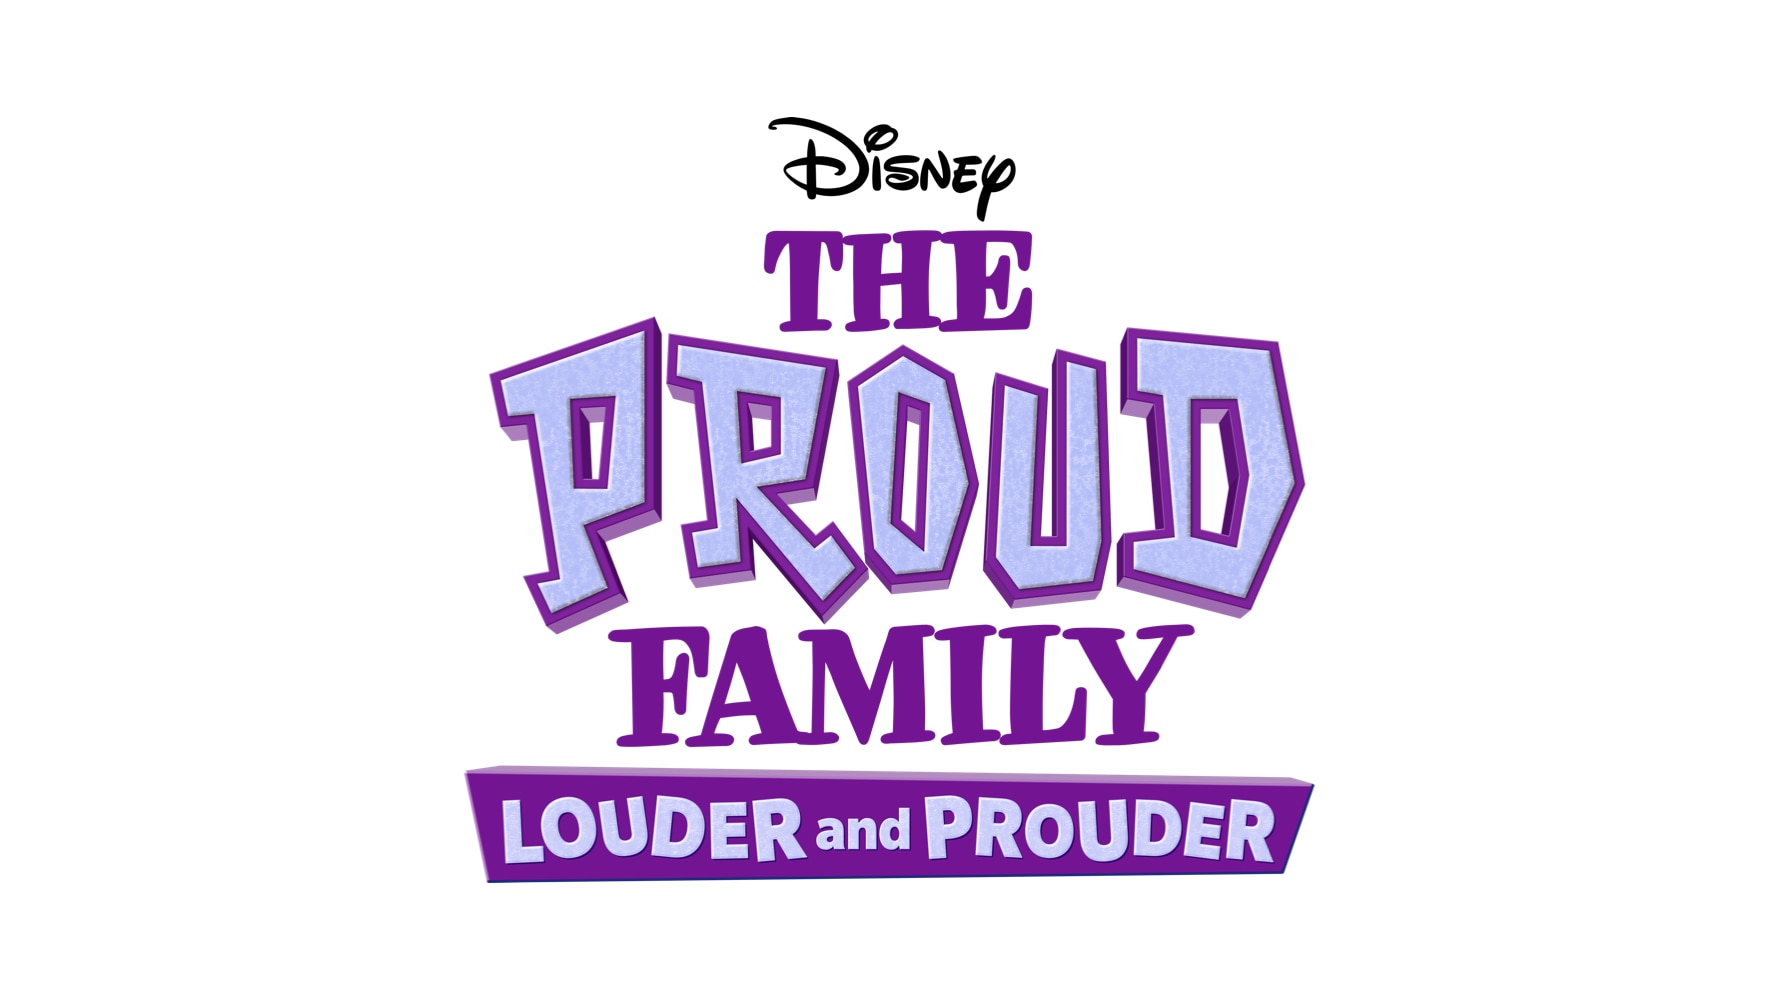 Disney+ Revival Of 'The Proud Family' Gets Even 'Louder And Prouder' With Star-Studded Guest Voice Roster, Including Lizzo, Tiffany Haddish, Lil Nas X, Chance The Rapper, Lena Waithe, Leslie Odom Jr., Gabrielle Union, Normani And Many More